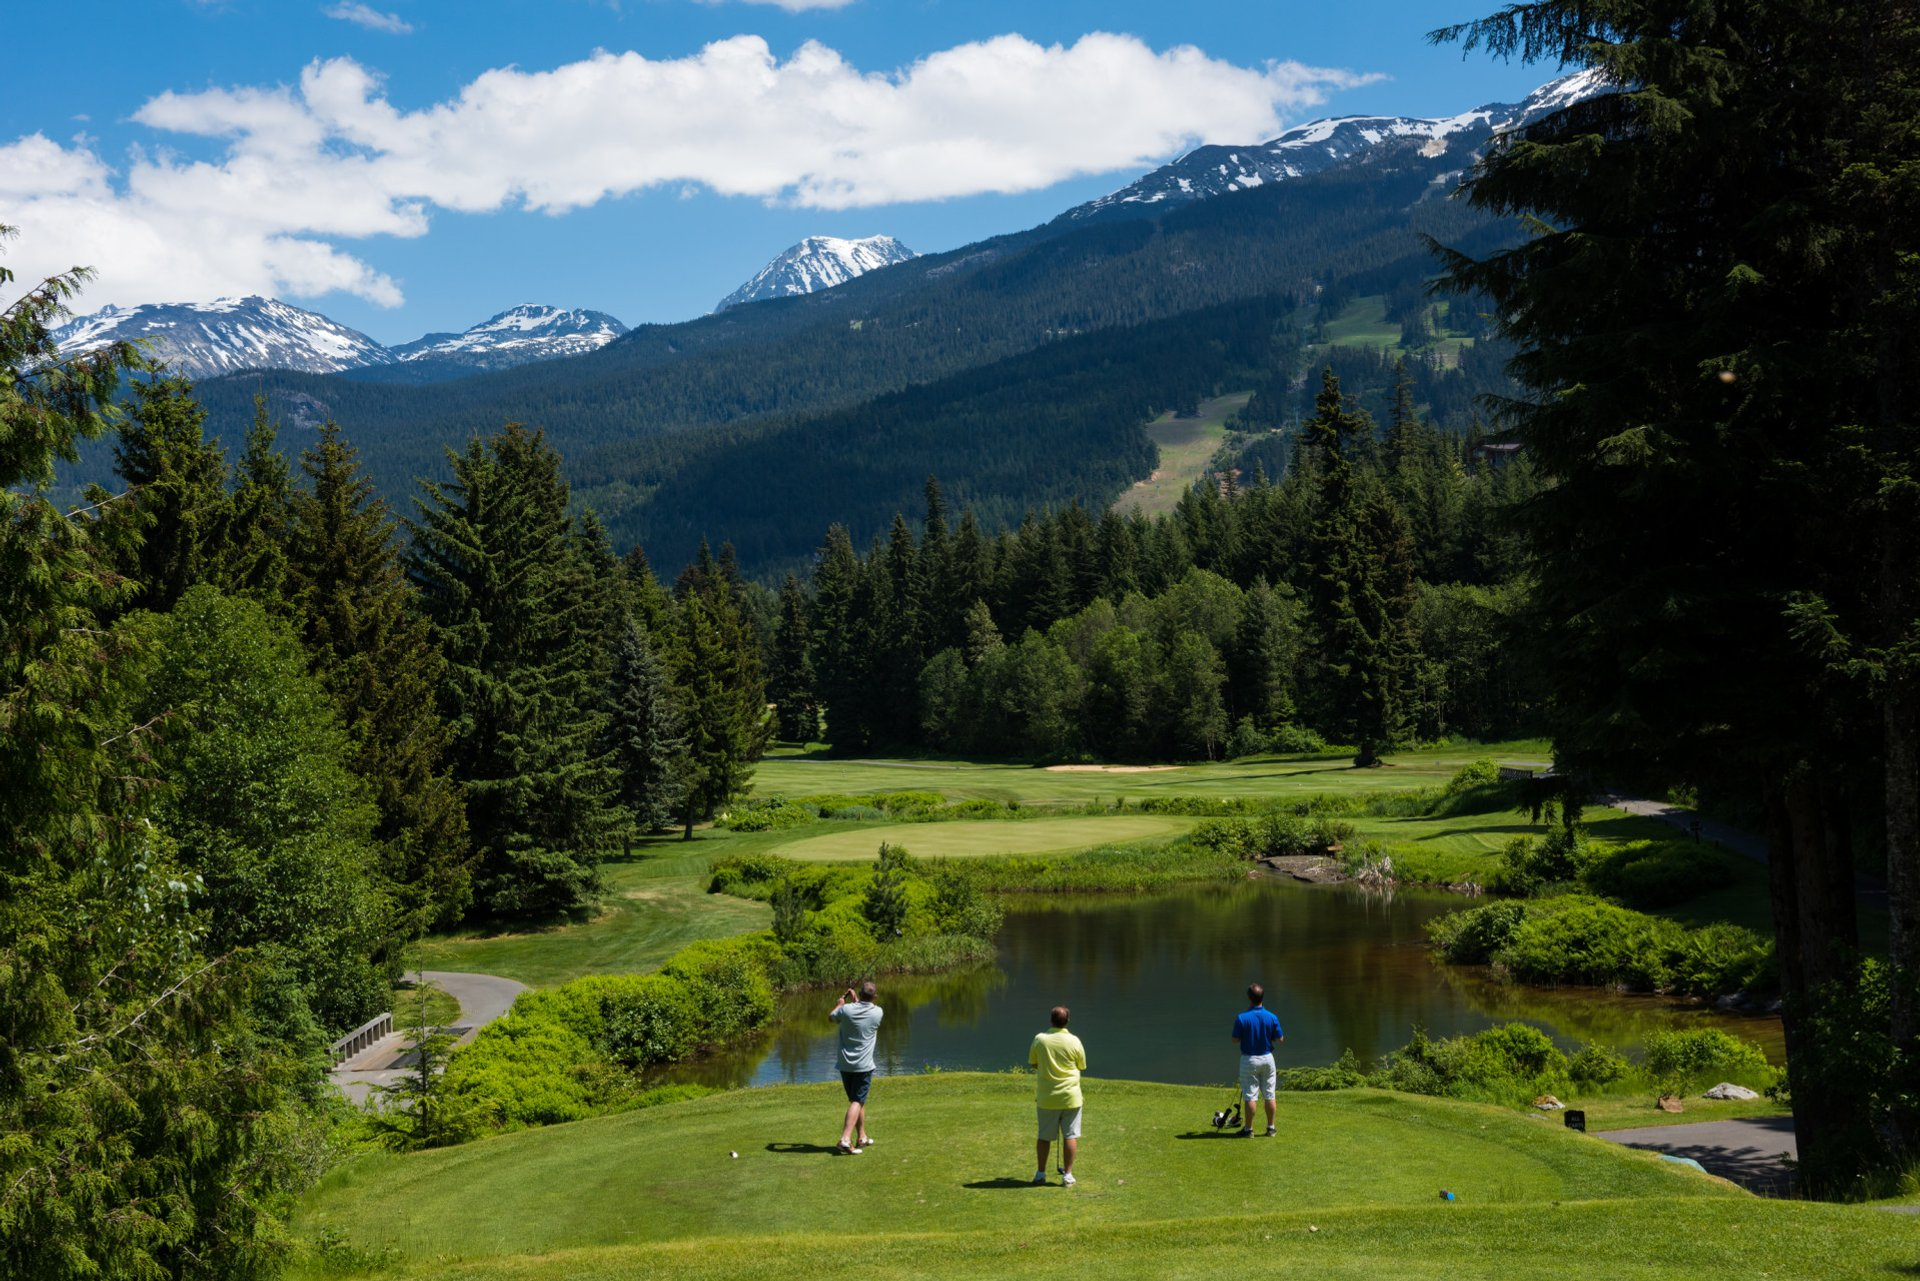 Golf in Vancouver 2020 - Best Time